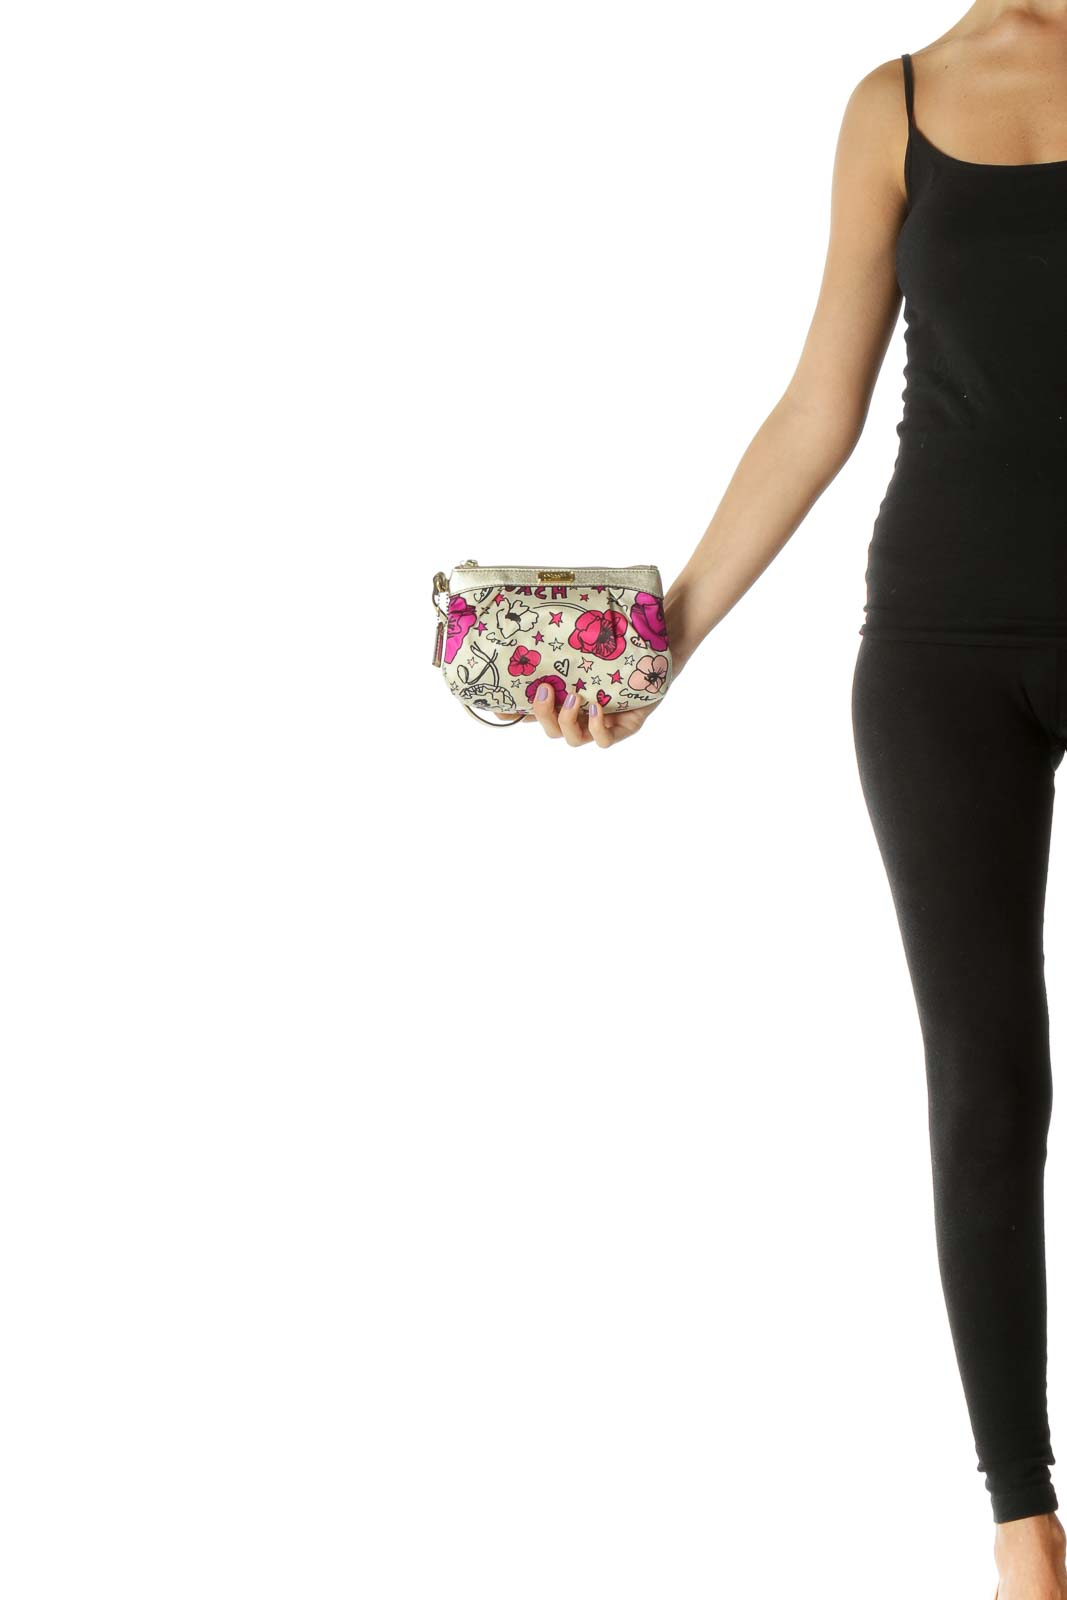 Gold and Pink Floral Print Clutch